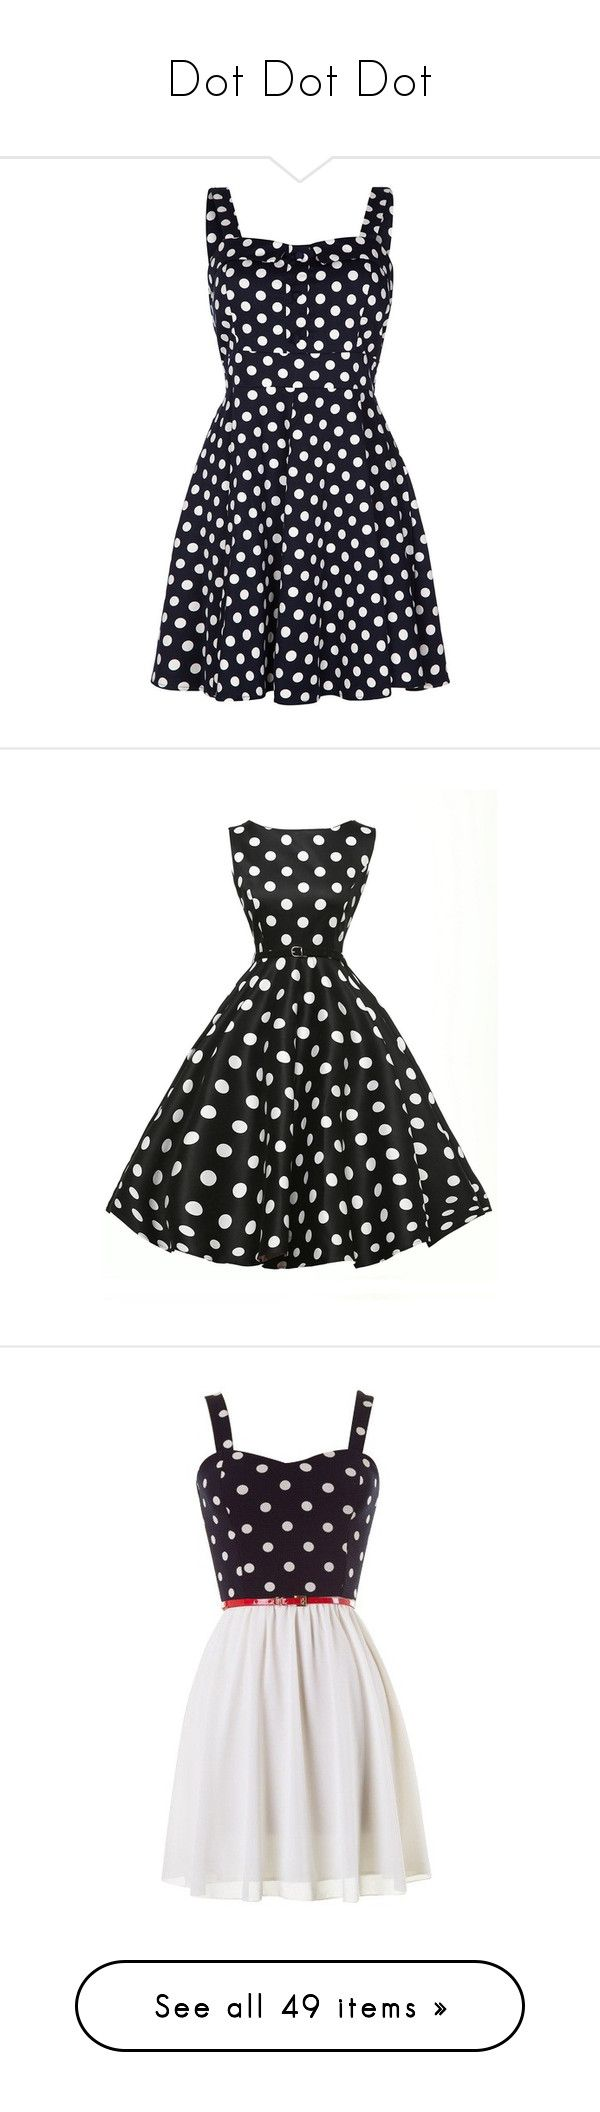 """""""Dot Dot Dot"""" by mrseclipse ❤ liked on Polyvore featuring dresses, vestidos, short dresses, clearance, navy, mini dress, blue polka dot dress, polka dot dress, blue dress and black"""